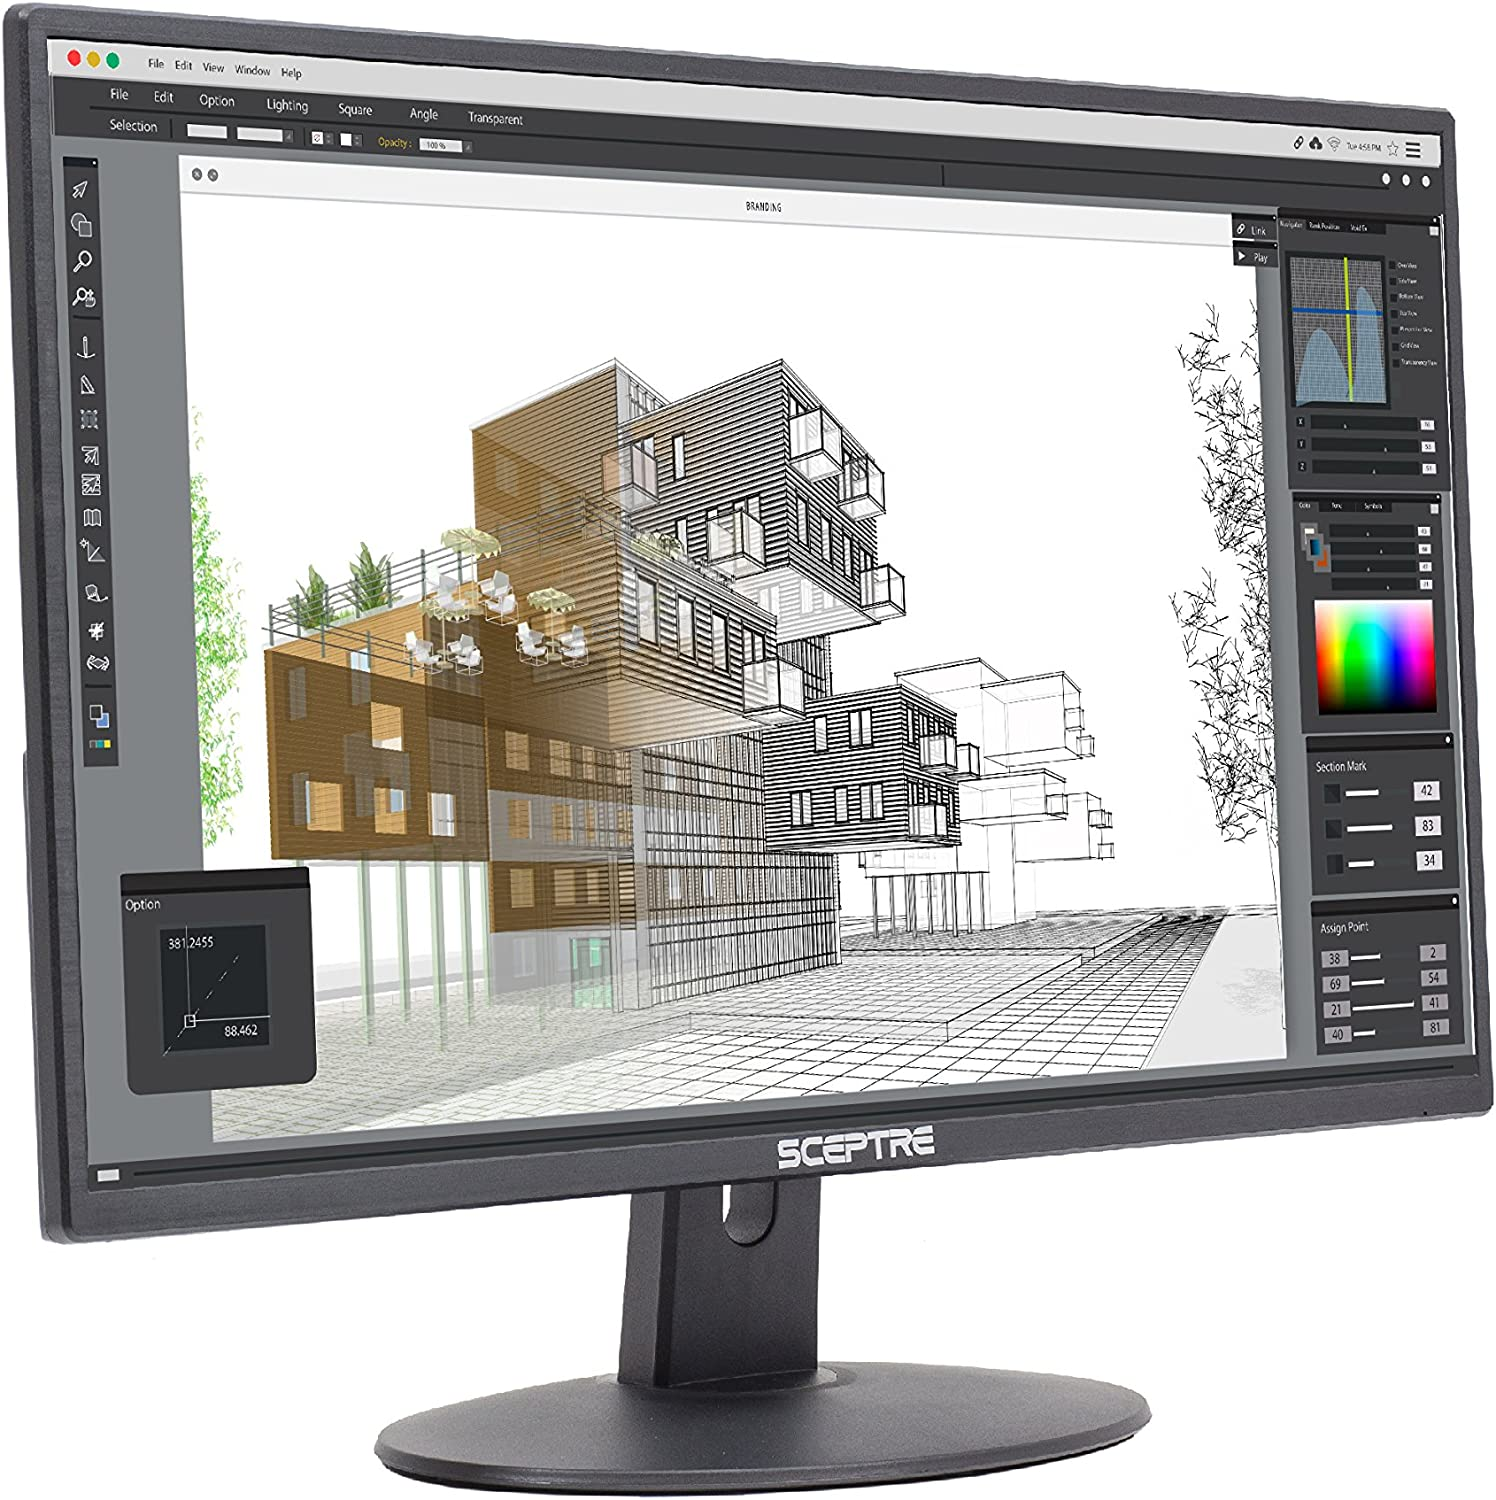 autocad monitor, best cad monitor, best computer monitor for autocad, best monitor for autocad, best monitors for autocad